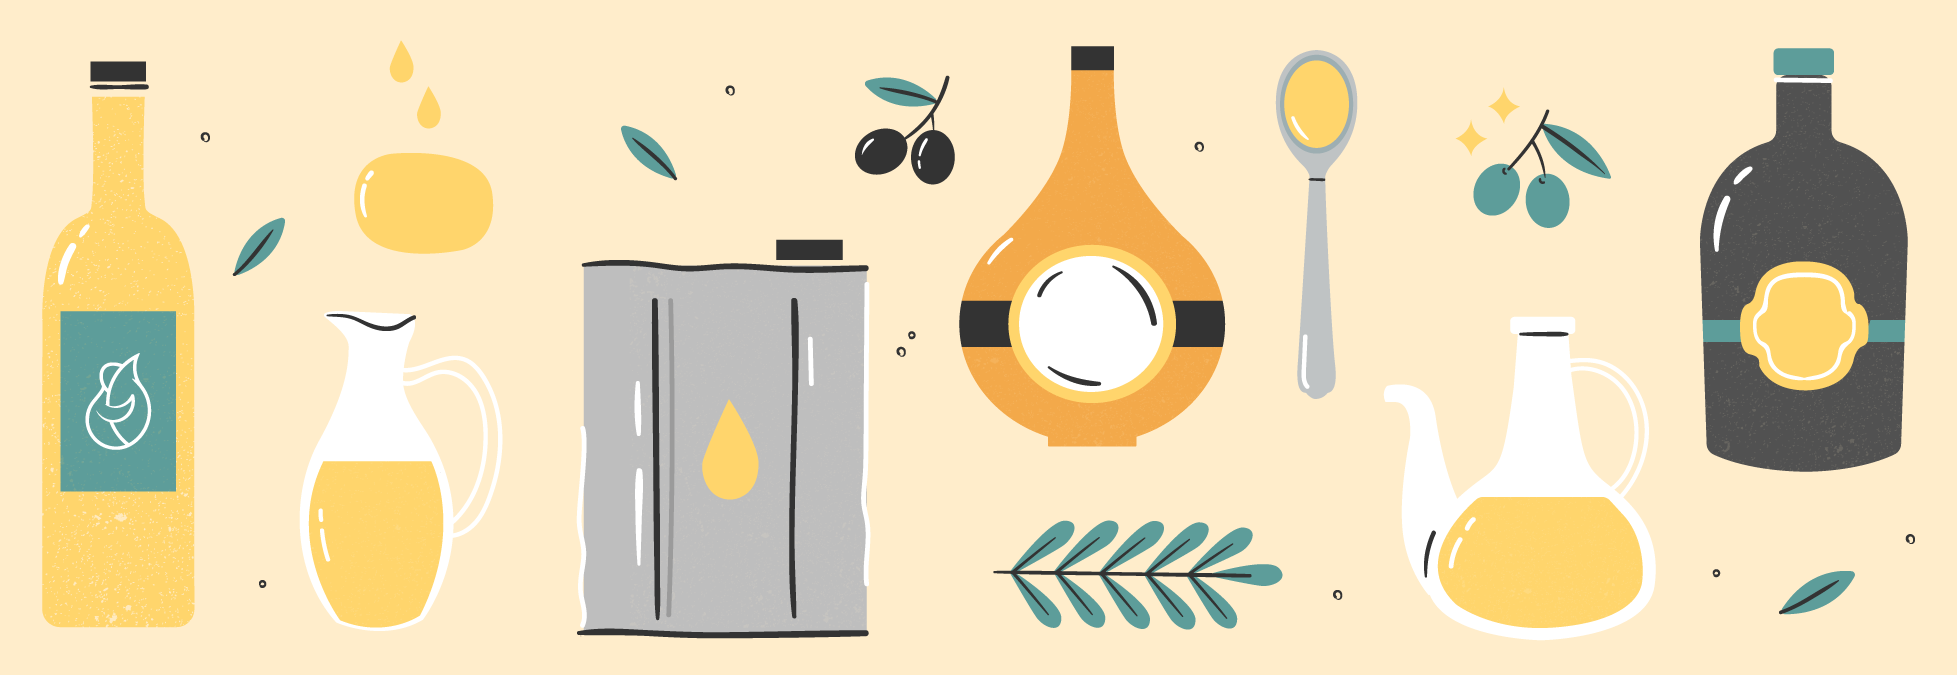 Illustration of bottles and cans of extra virgin olive oil